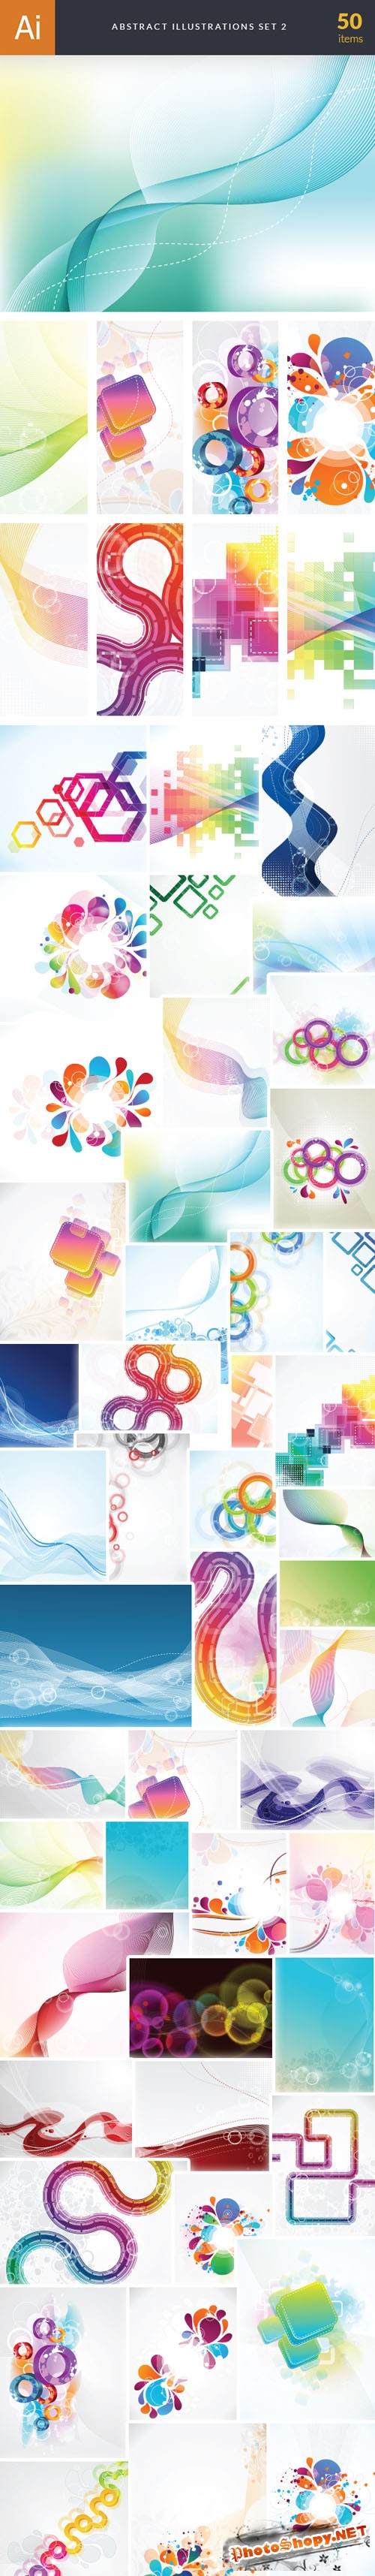 50 Abstract Vector Illustrations Bundle